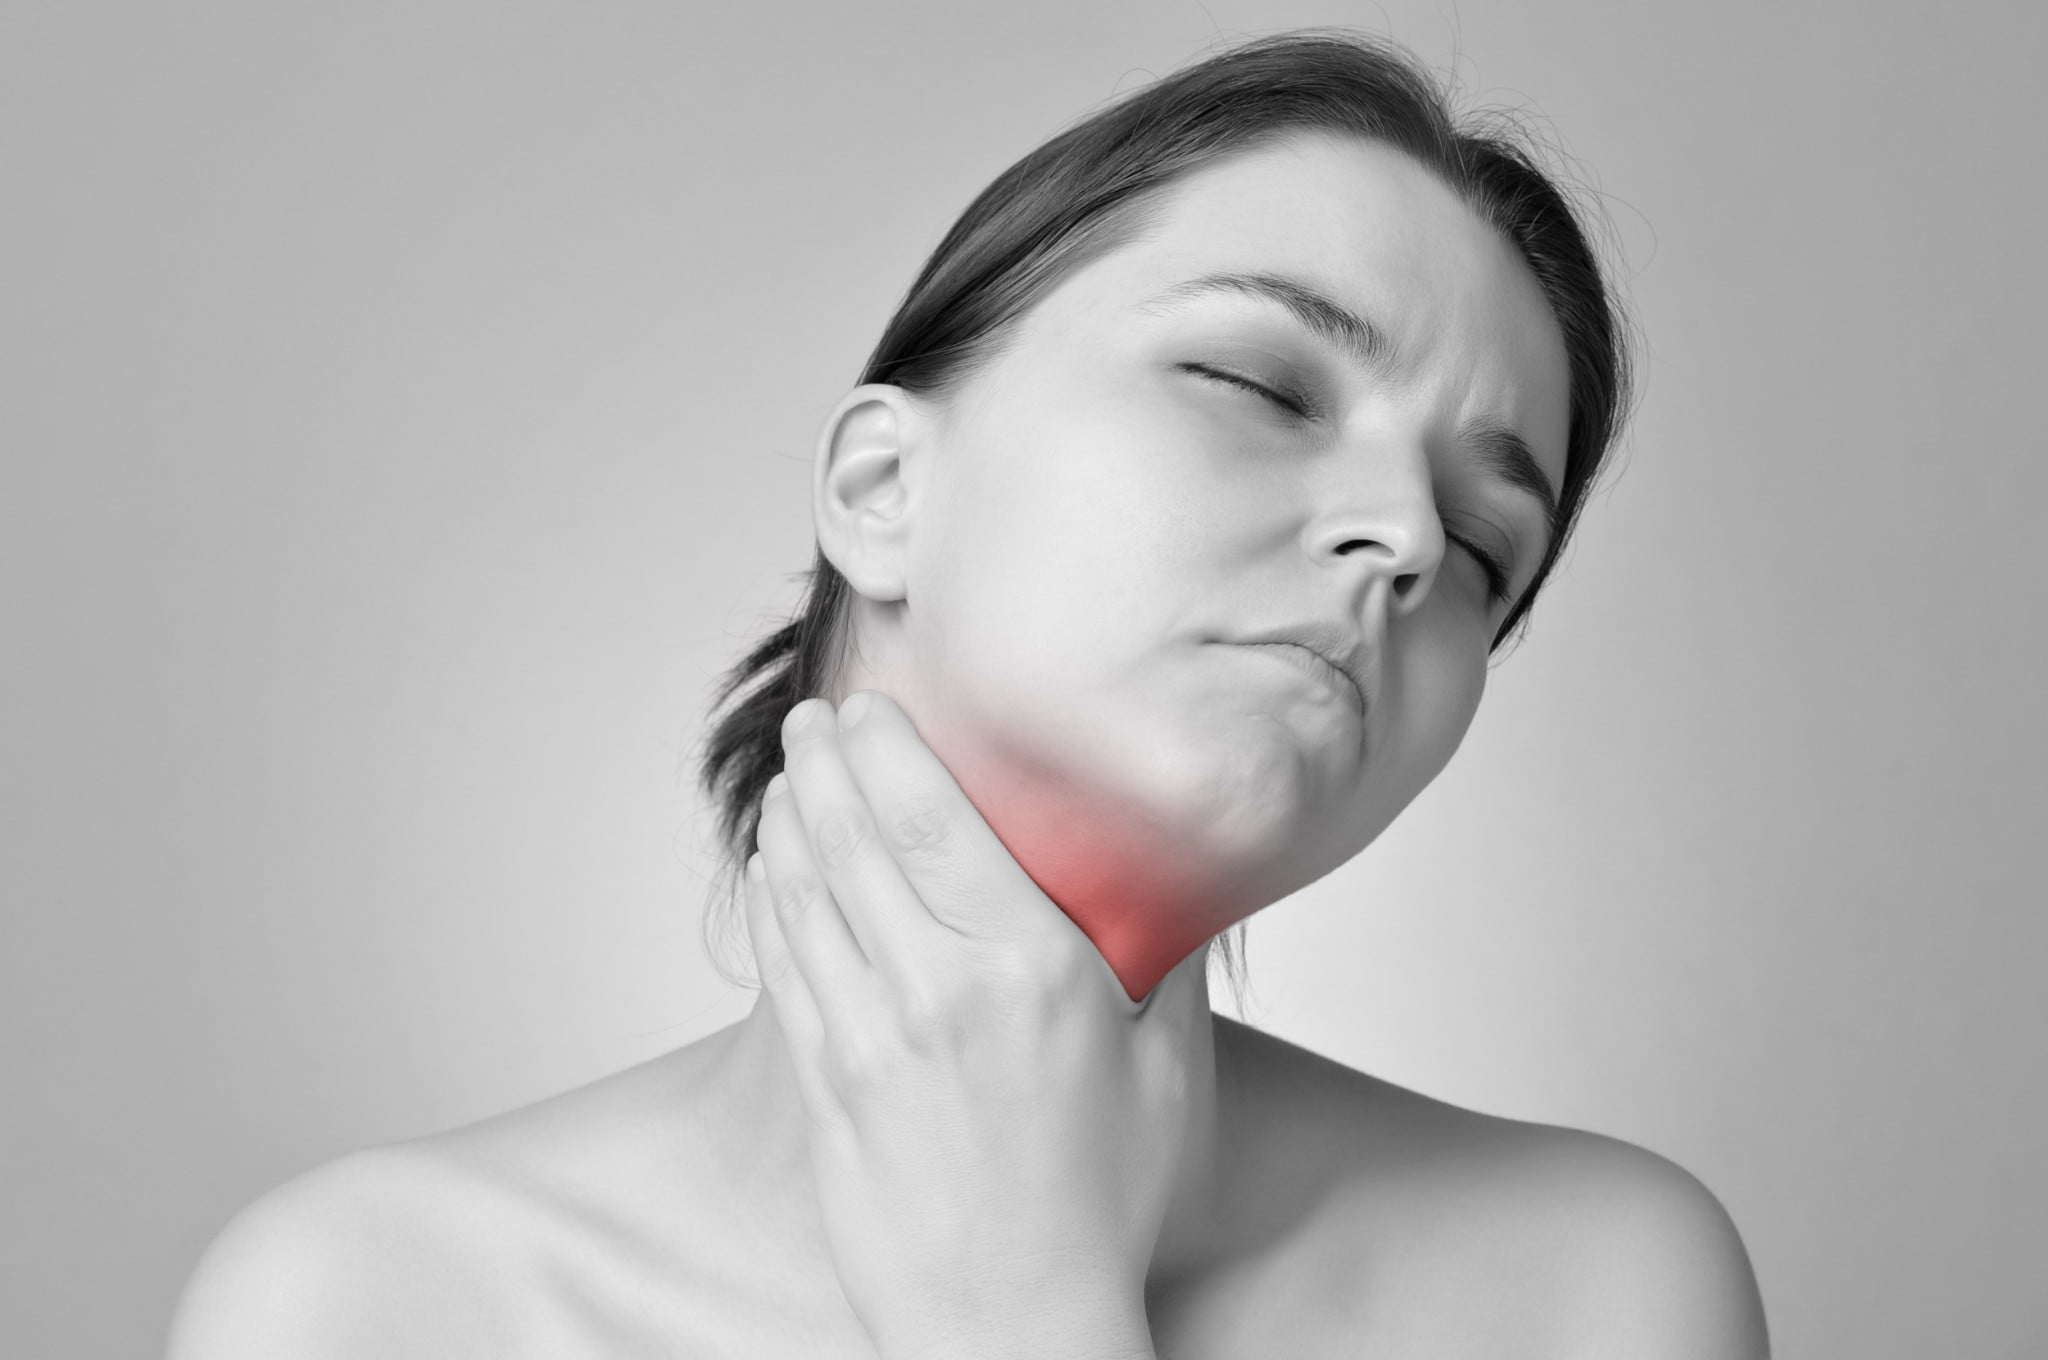 PPIs: woman holds red throat